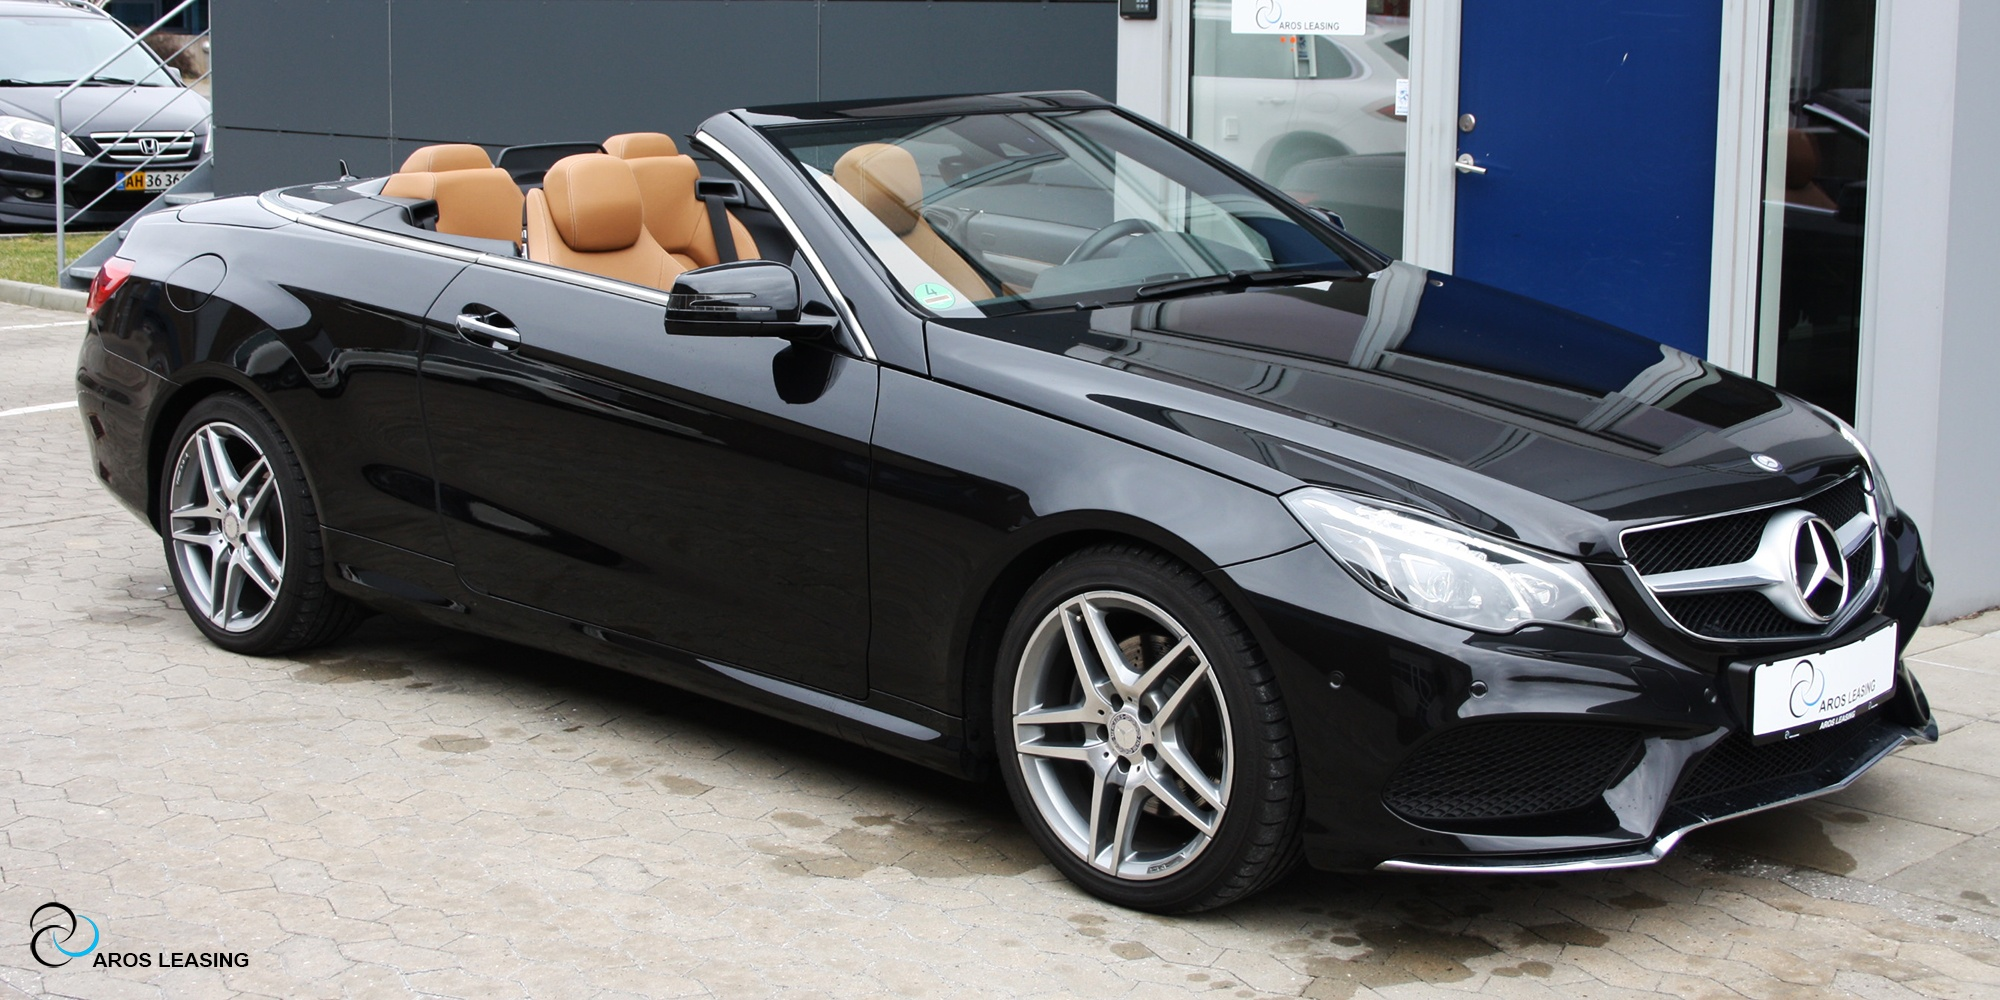 Mercedes benz e350 cdi cabriolet aros leasing for Mercedes benz convertible lease